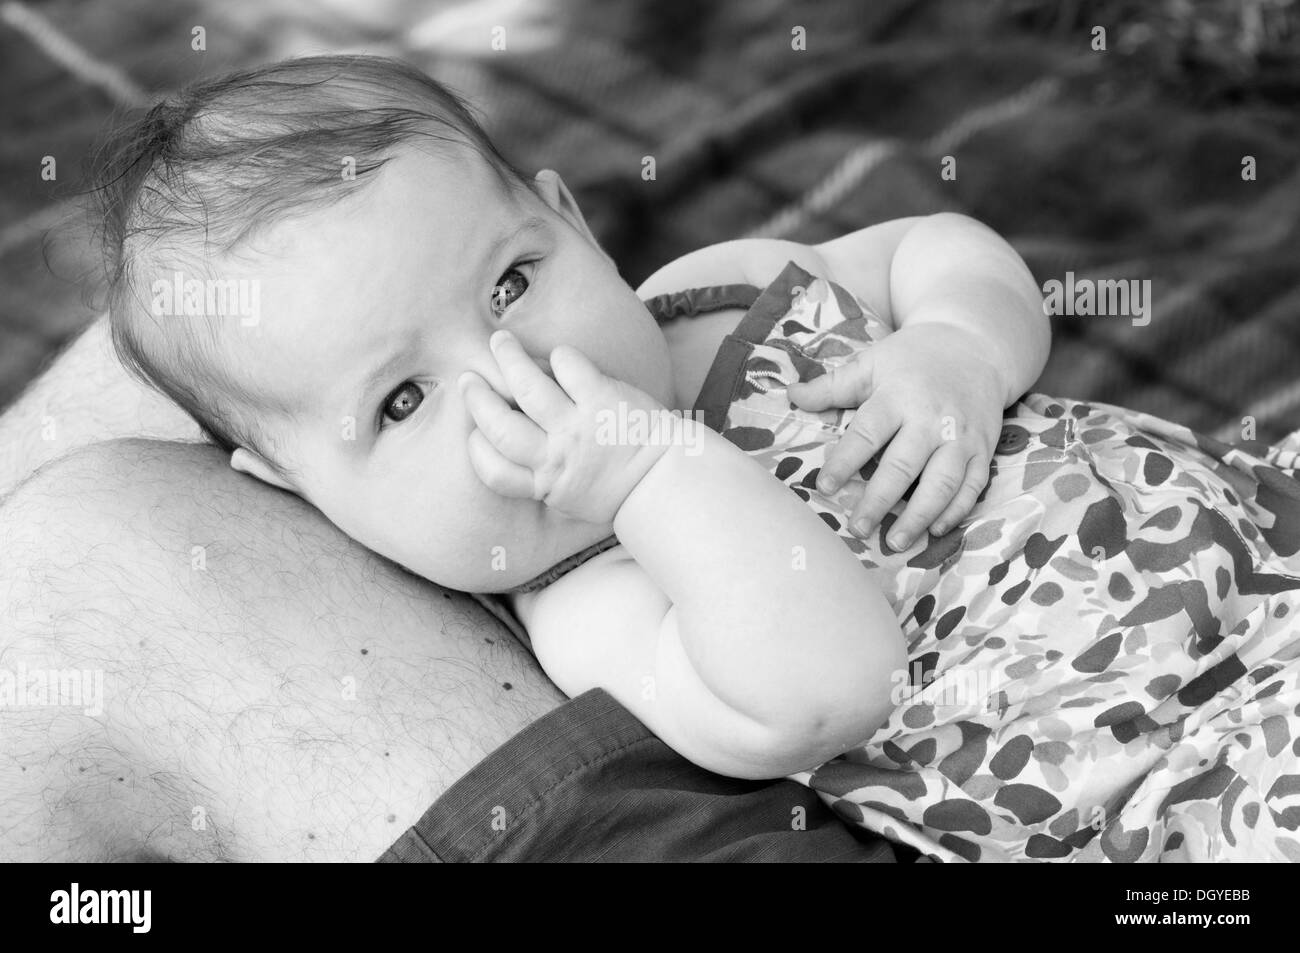 Close up black and white portrait of little baby girl sucking her thumb - Stock Image